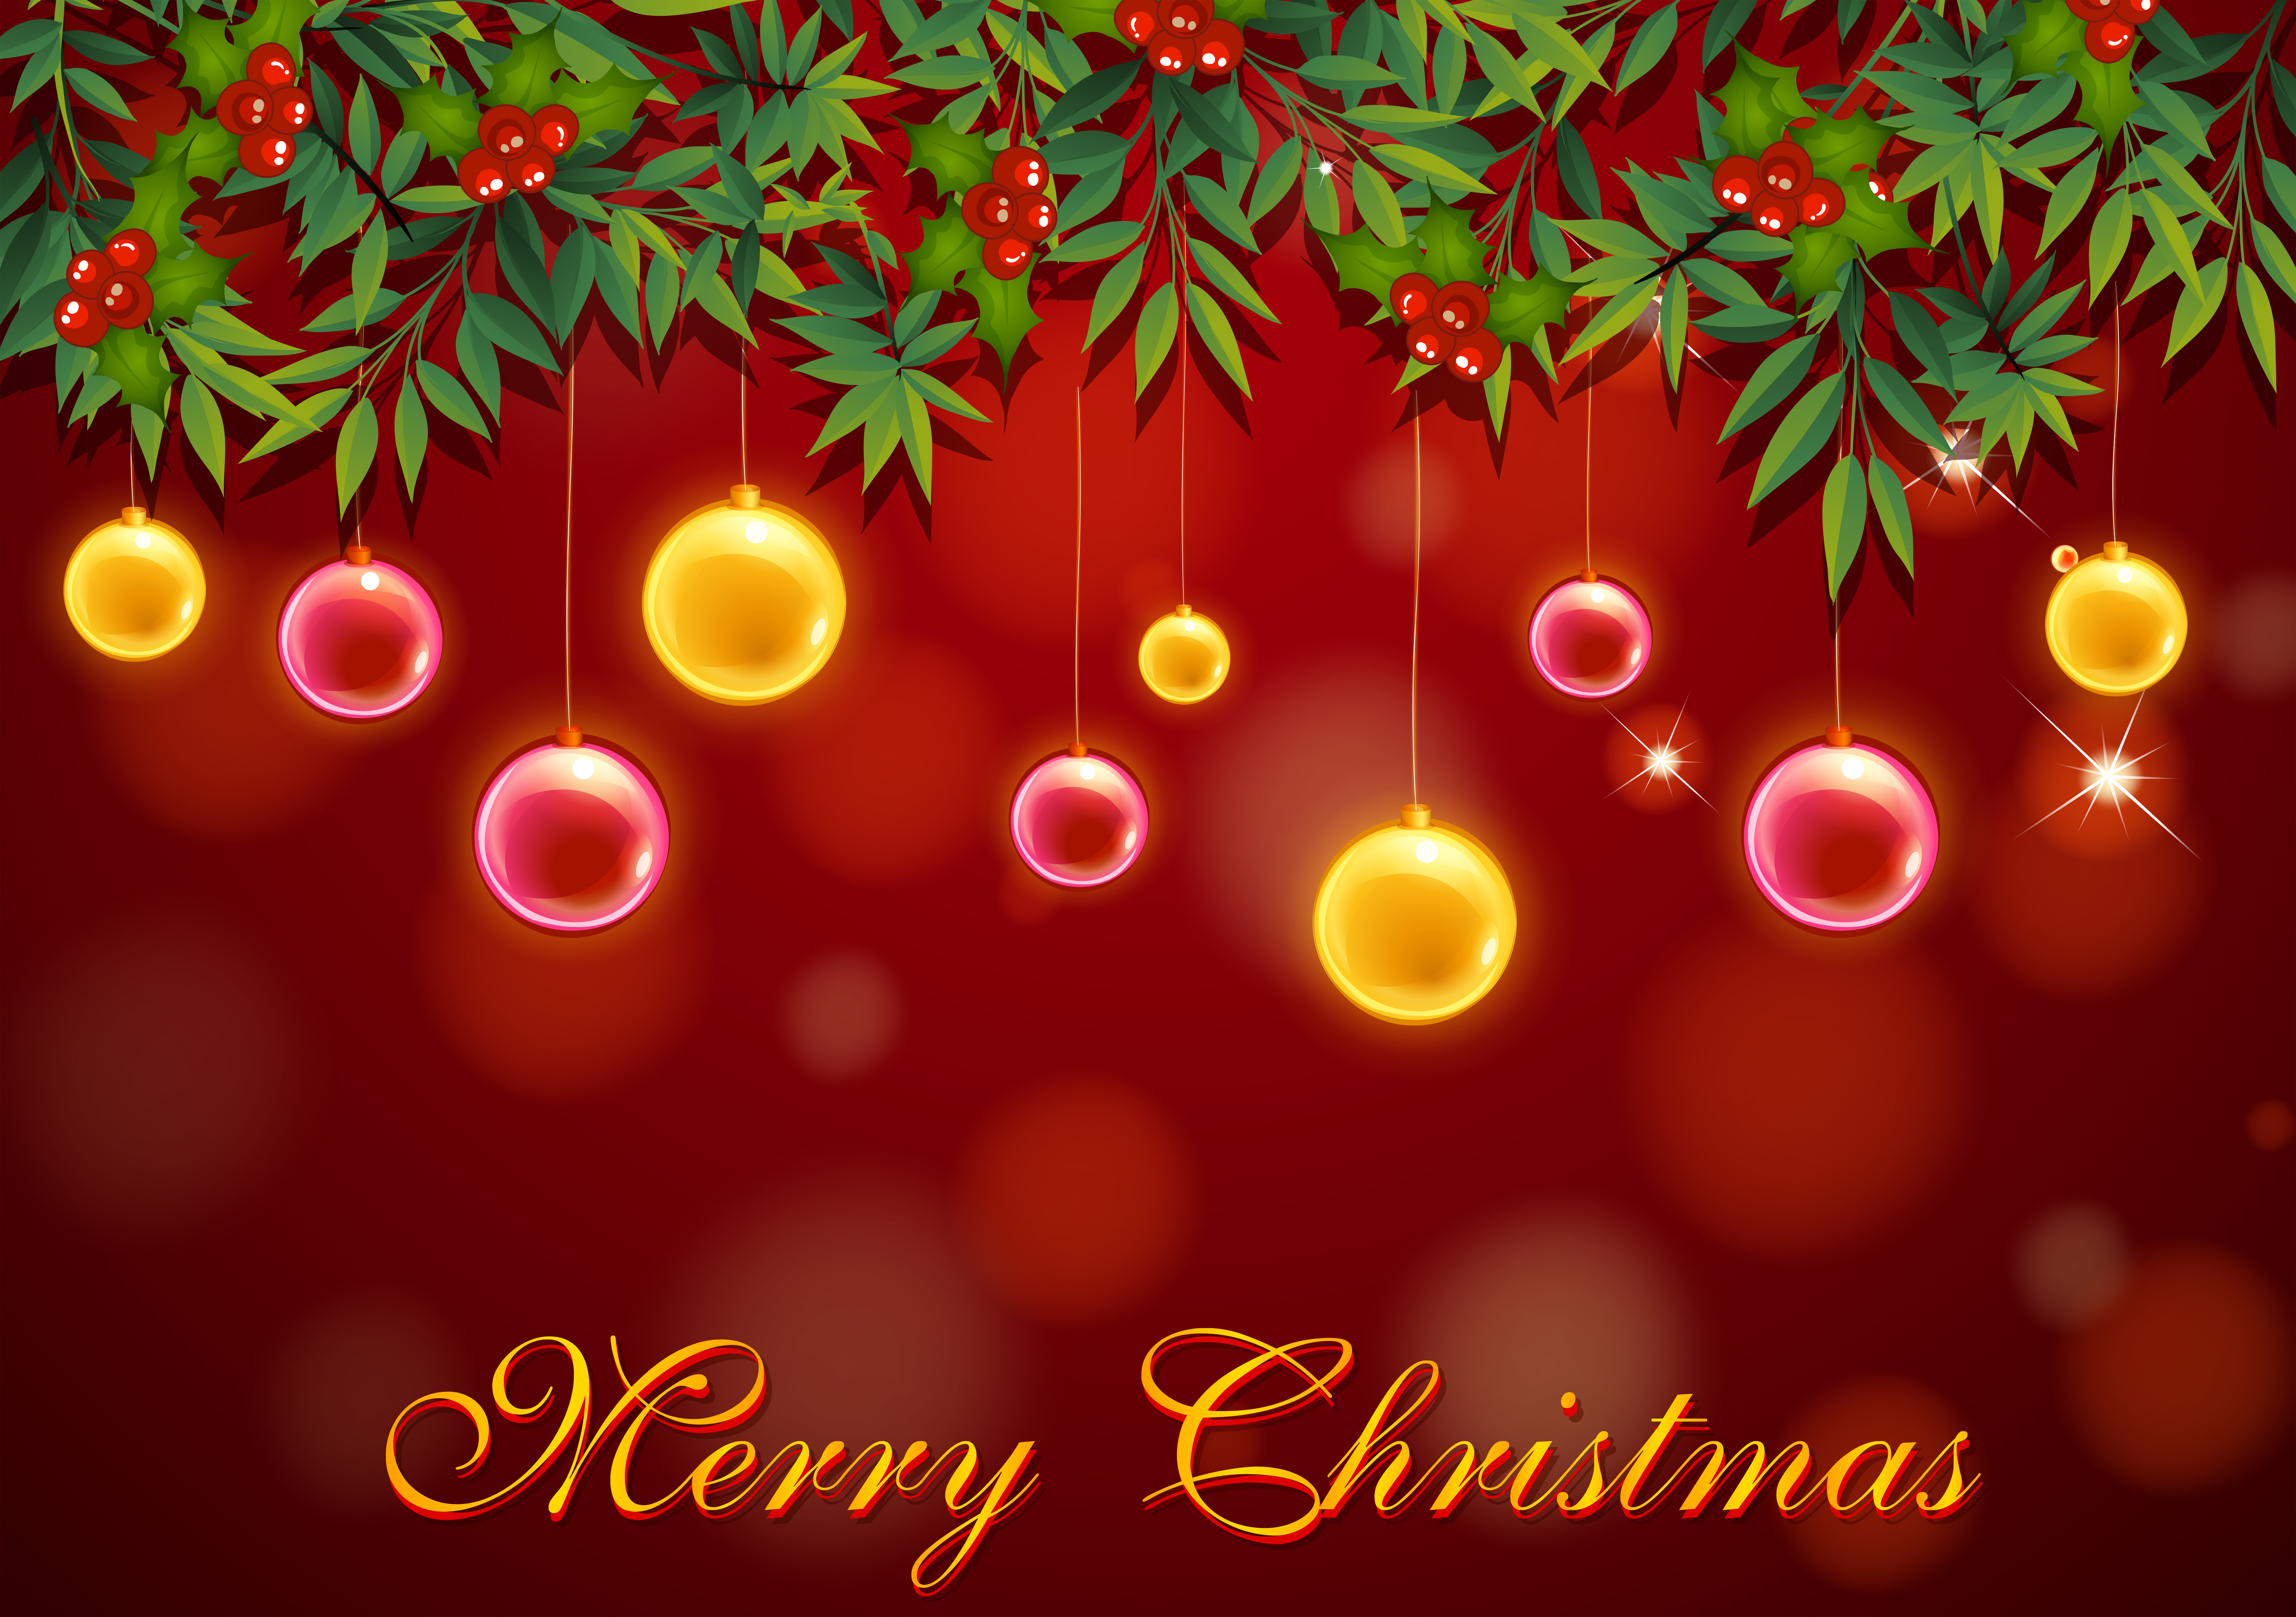 christmas card template with red and yellow balls 446003